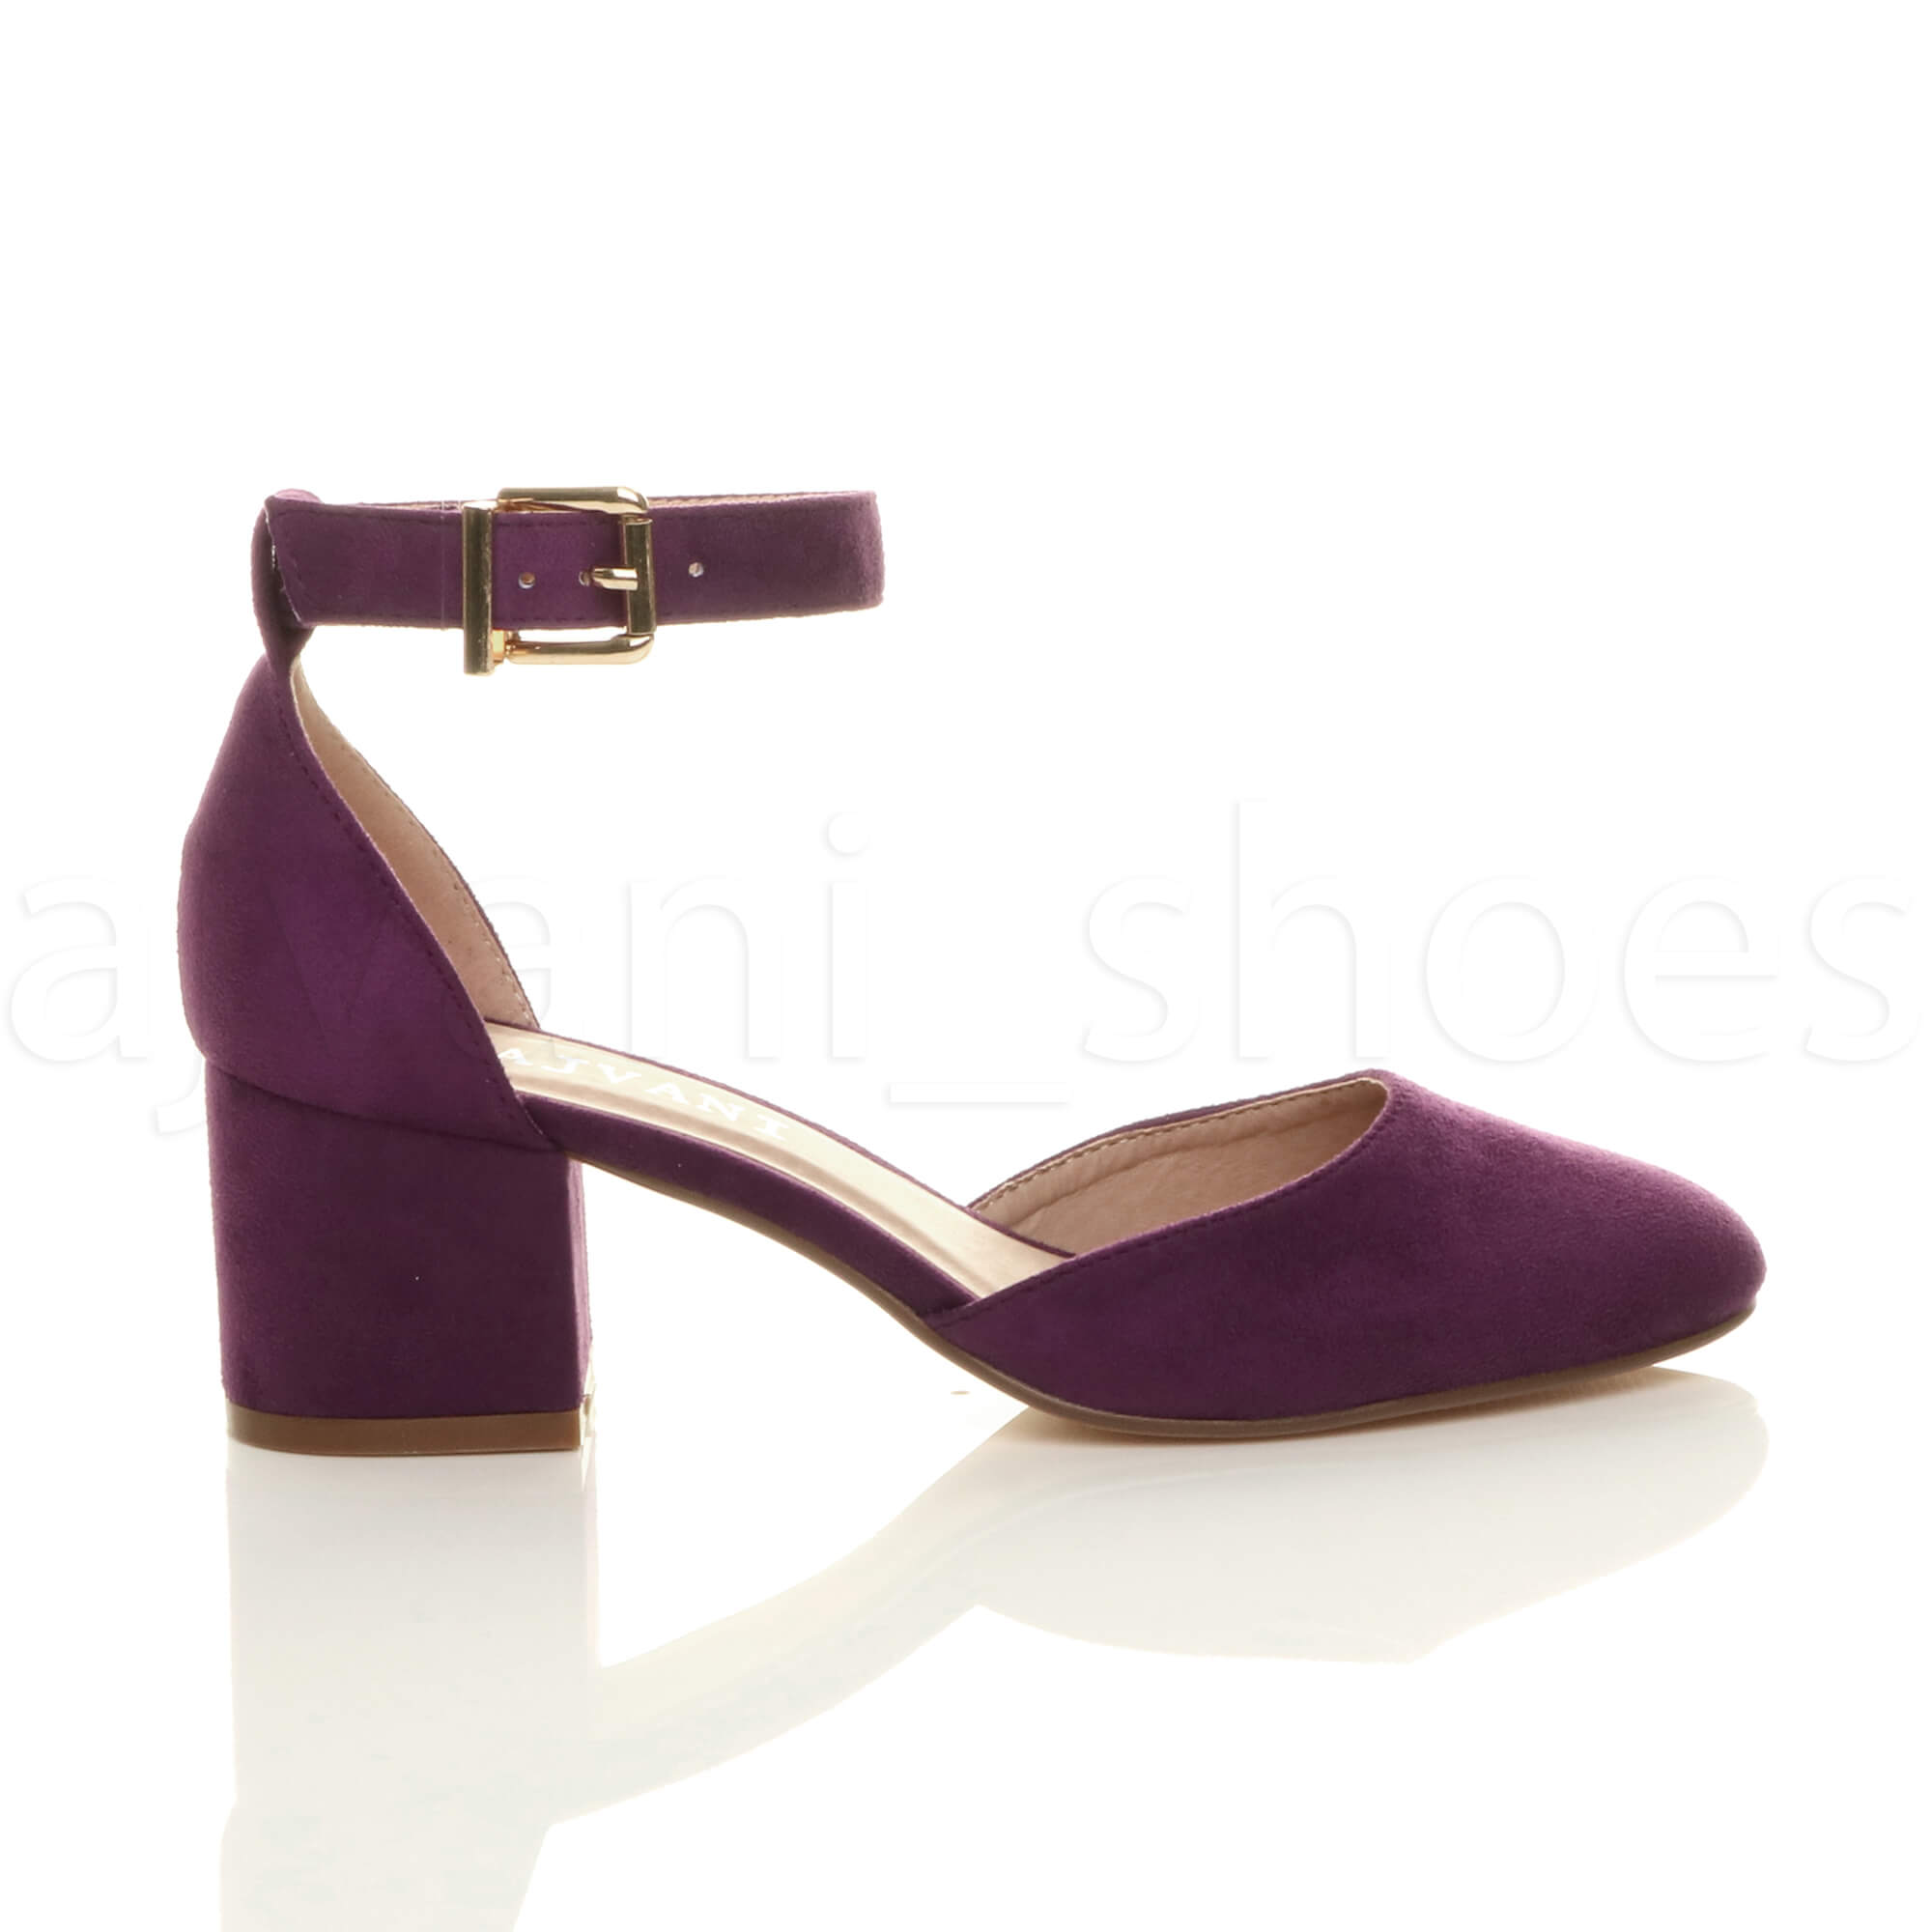 WOMENS-LADIES-LOW-MID-BLOCK-HEEL-ANKLE-STRAP-MARY-JANE-COURT-SHOES-SANDALS-SIZE thumbnail 123